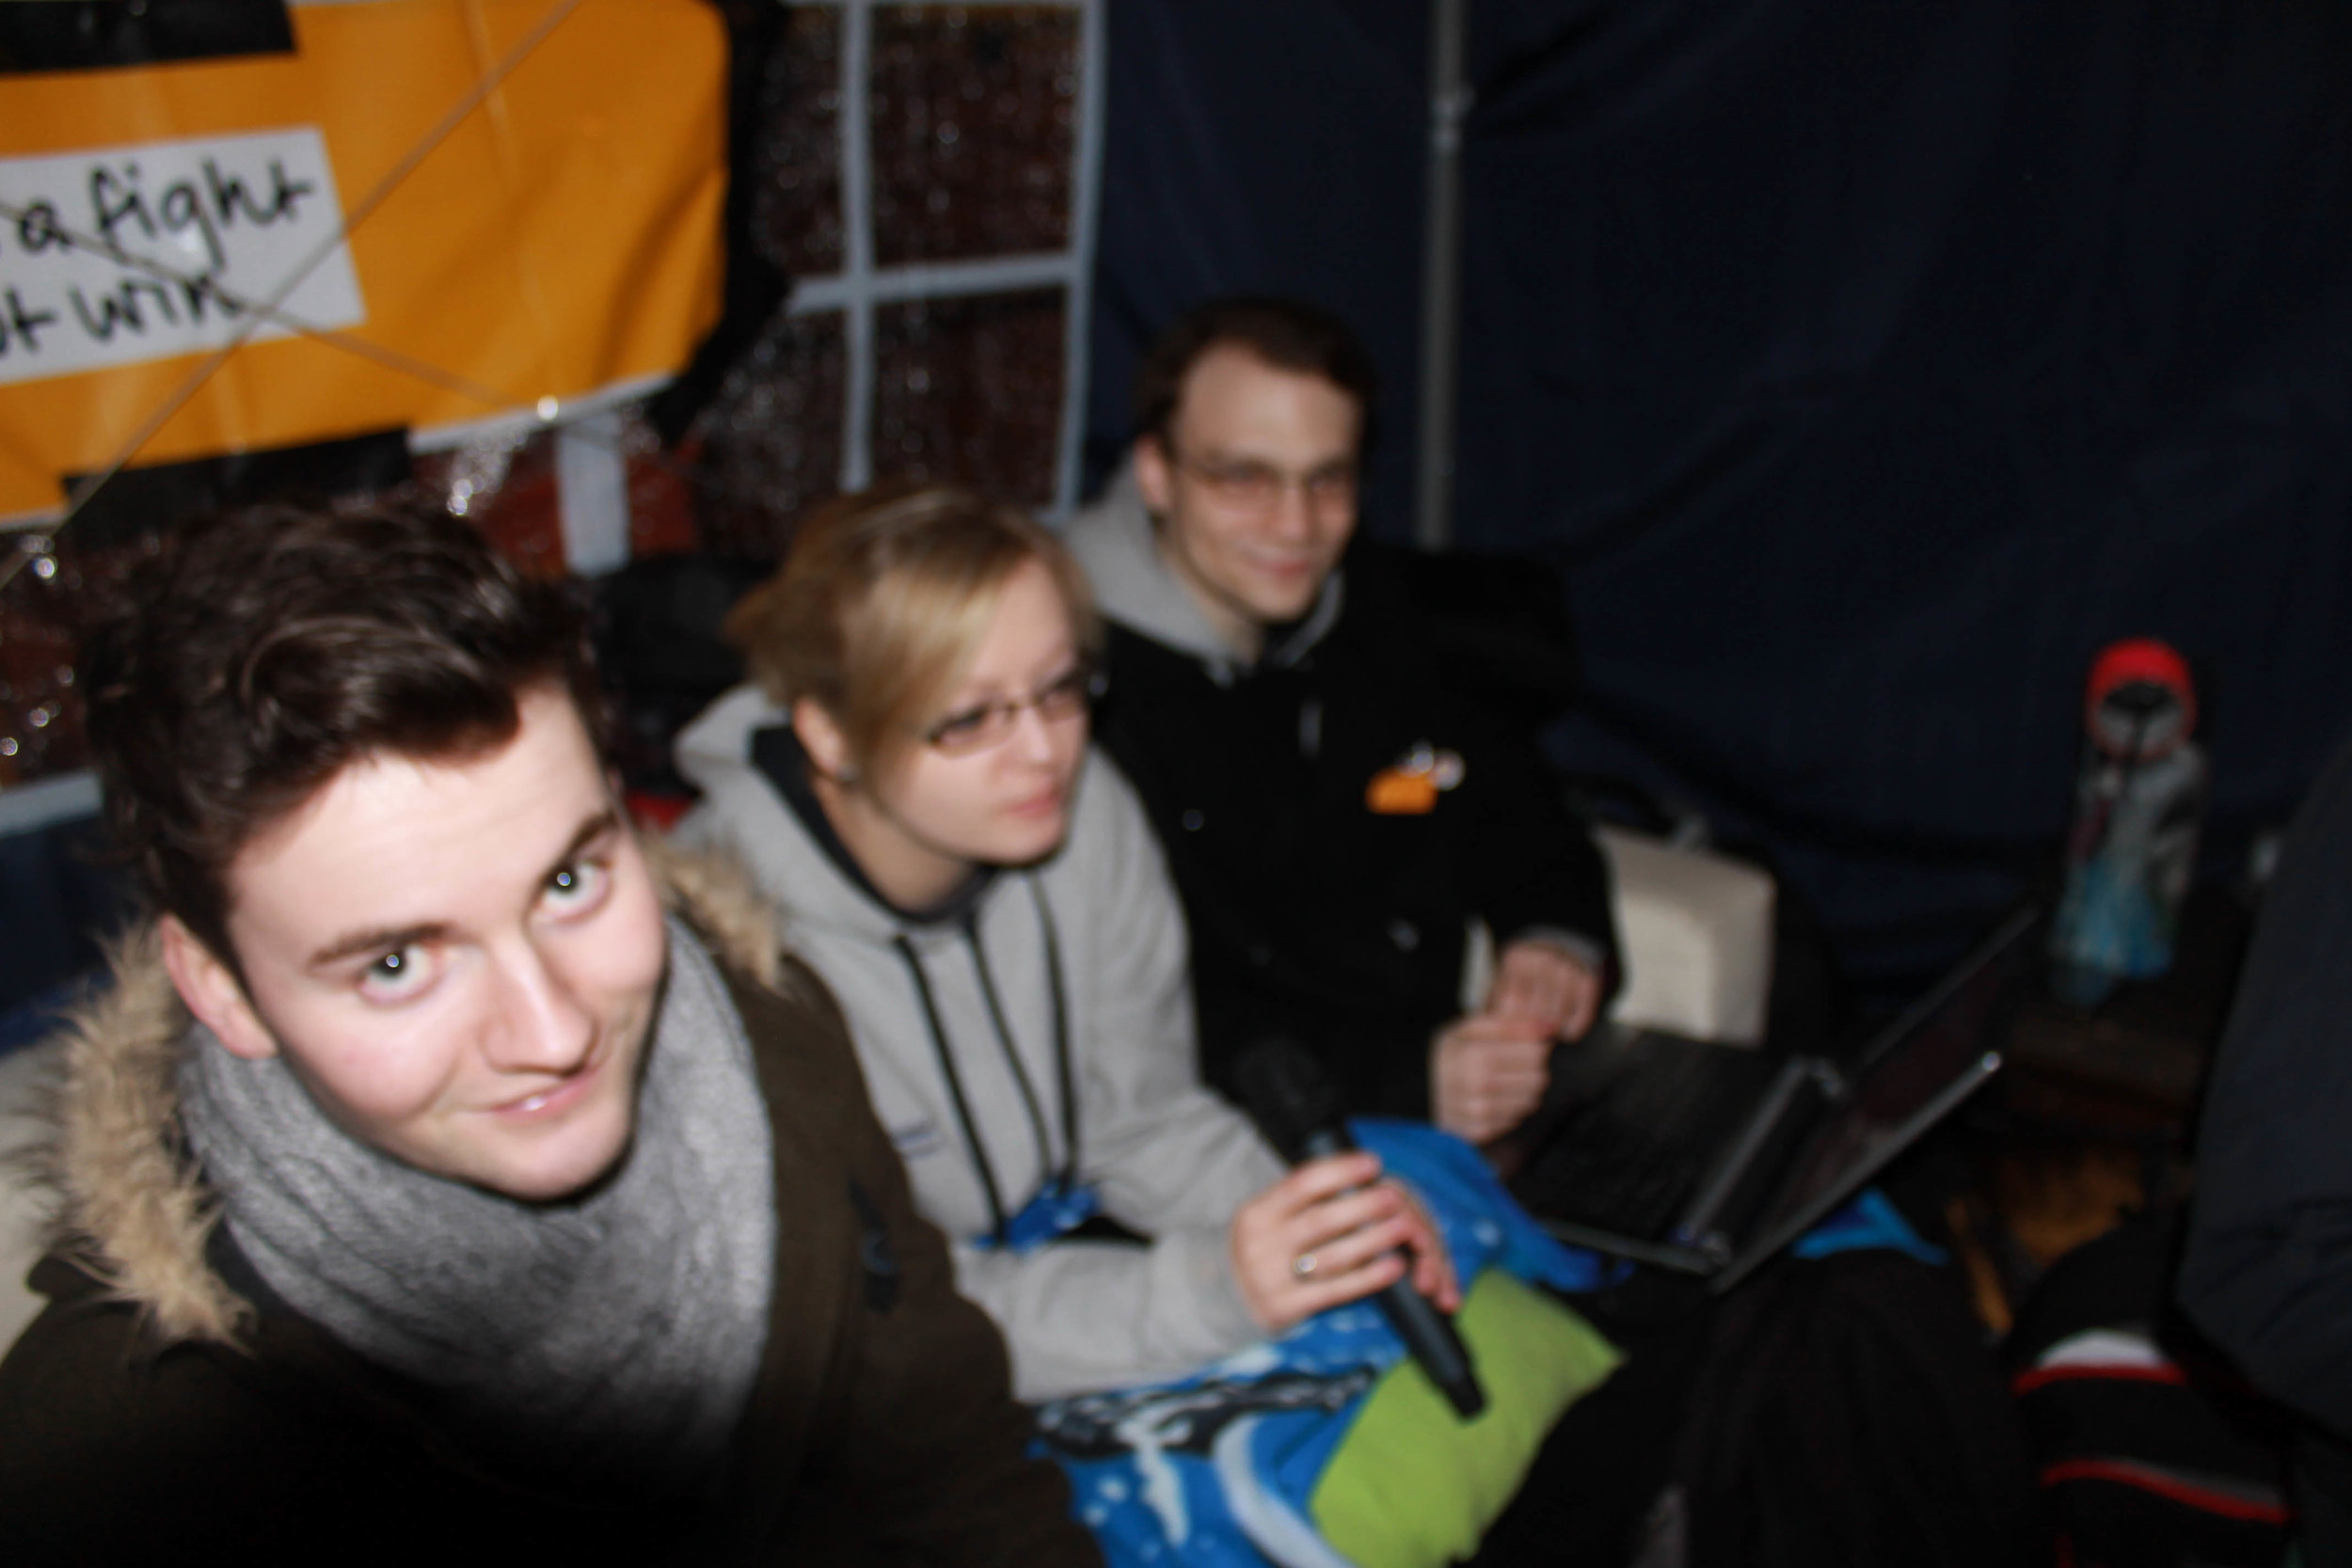 RaW 1251AM Presenters inside a tent on the Warwick University Piazza as part of the MaRaWthon in 2014.